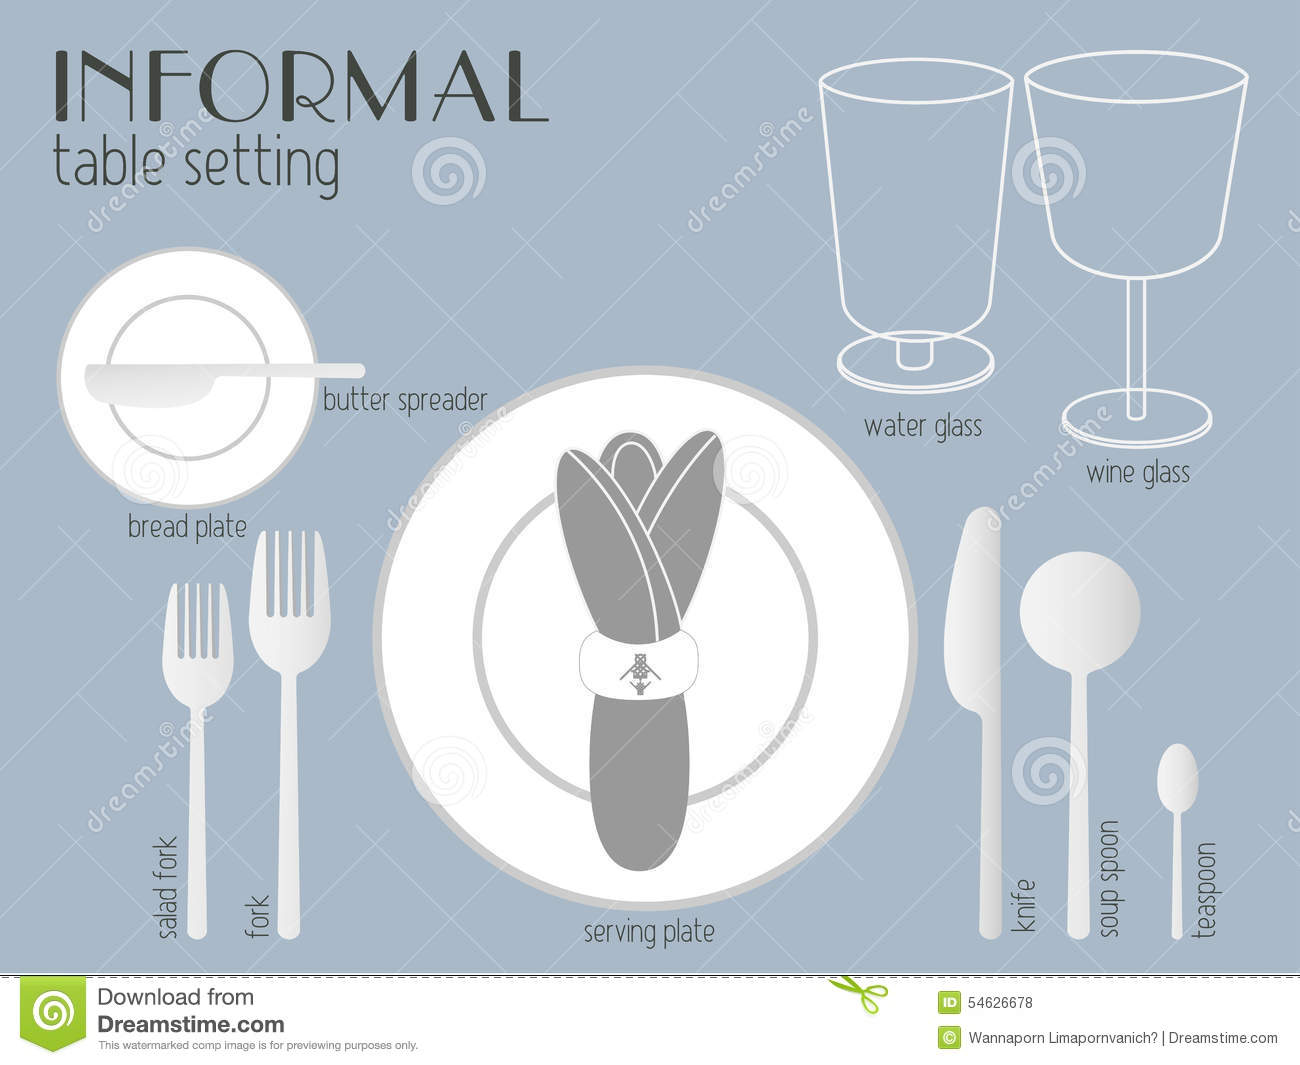 hight resolution of informal table setting stock vector illustration of